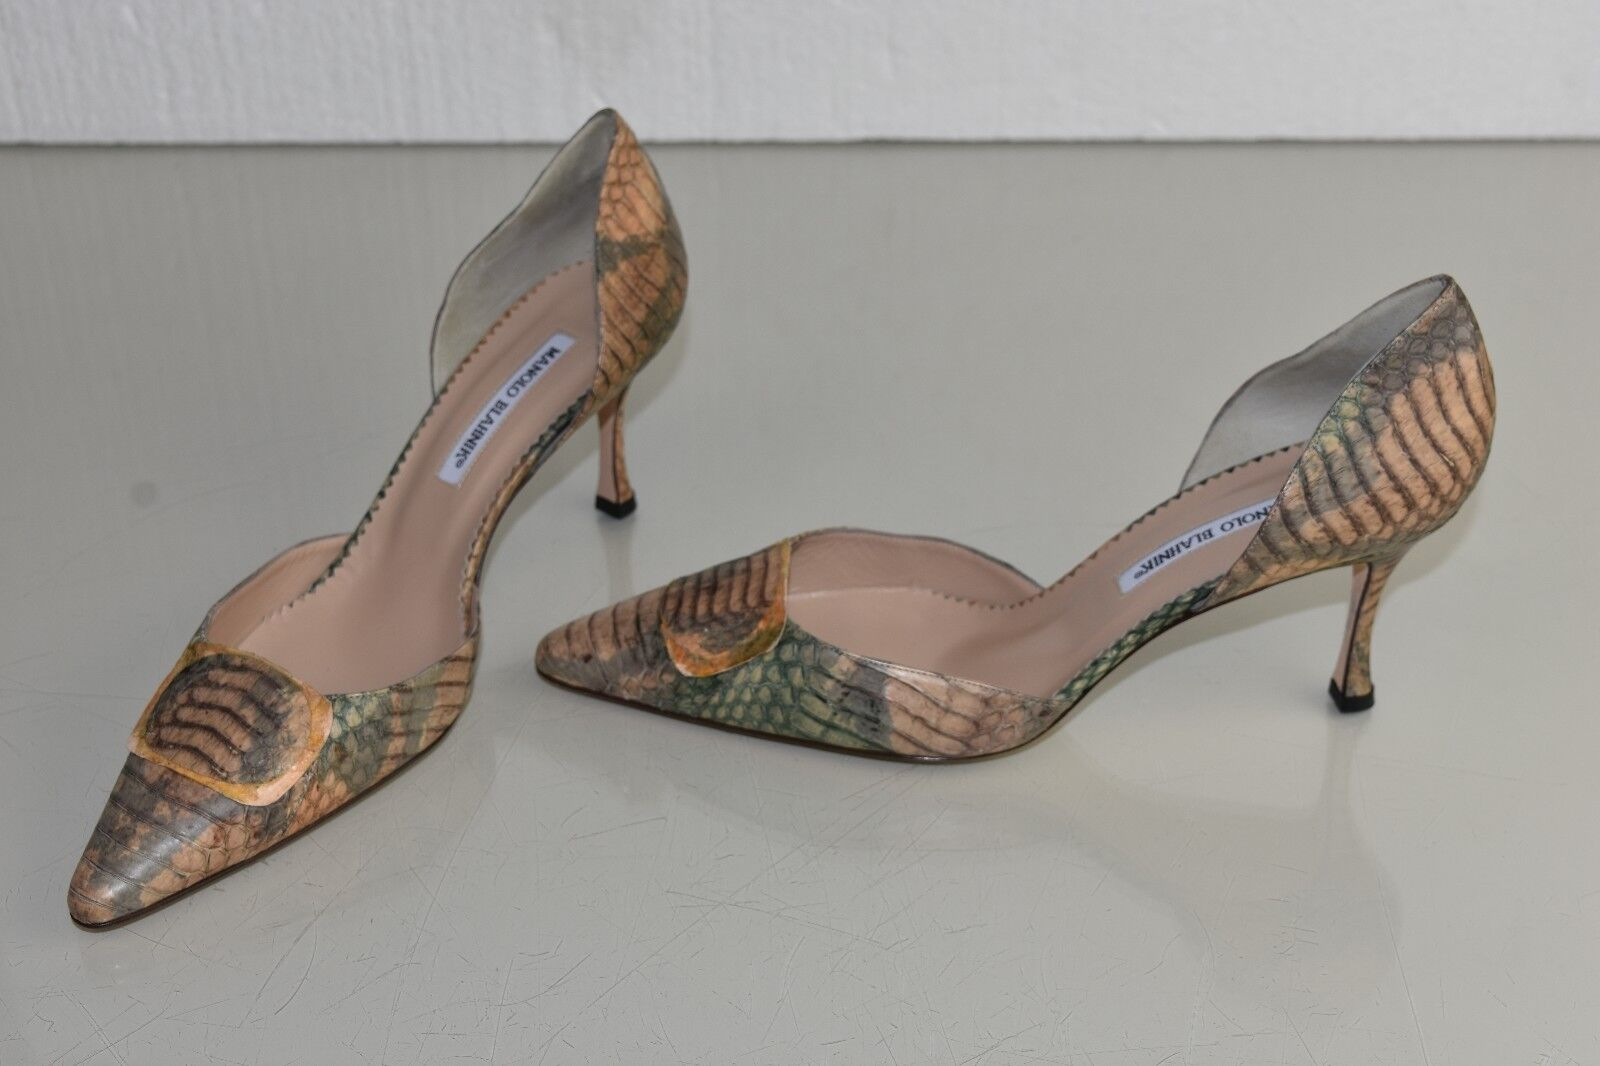 1290 NEW Manolo Blahnik EXOTIC EXOTIC EXOTIC PYTHON Pumps Dorsay braun Grün Taupe schuhe 41 467be9